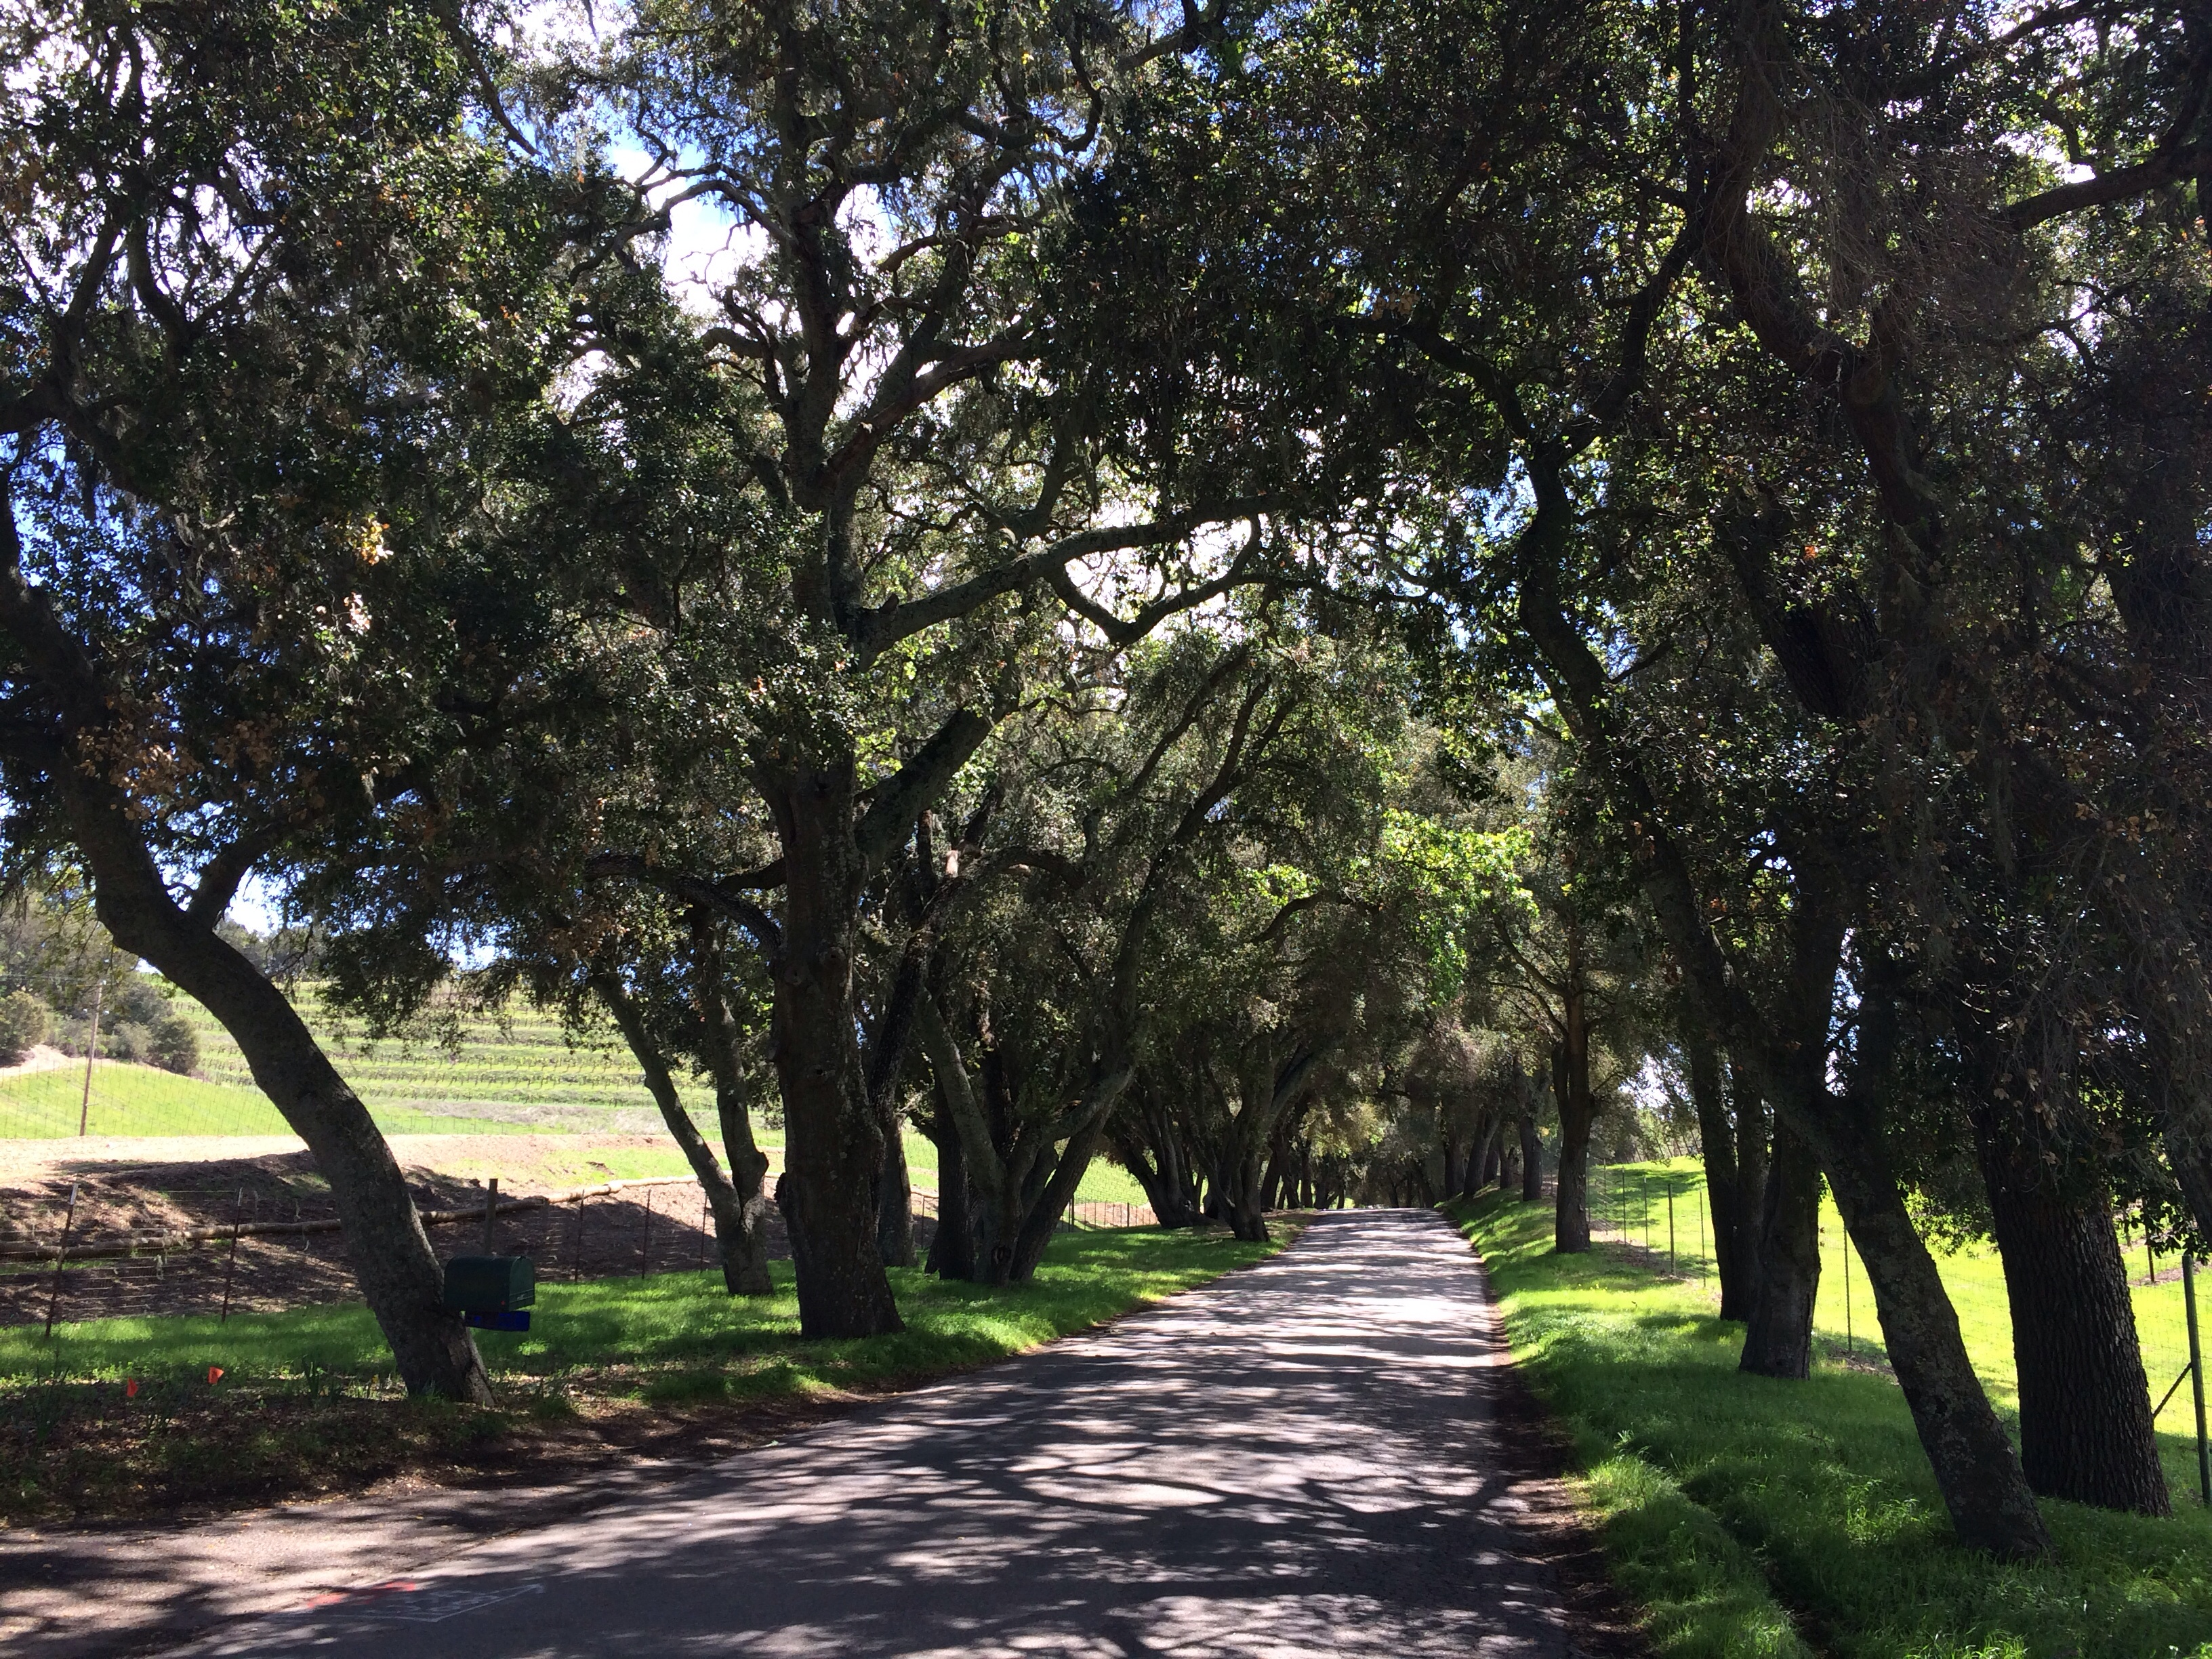 The Magical California Roads of Paso Robles Wine Country